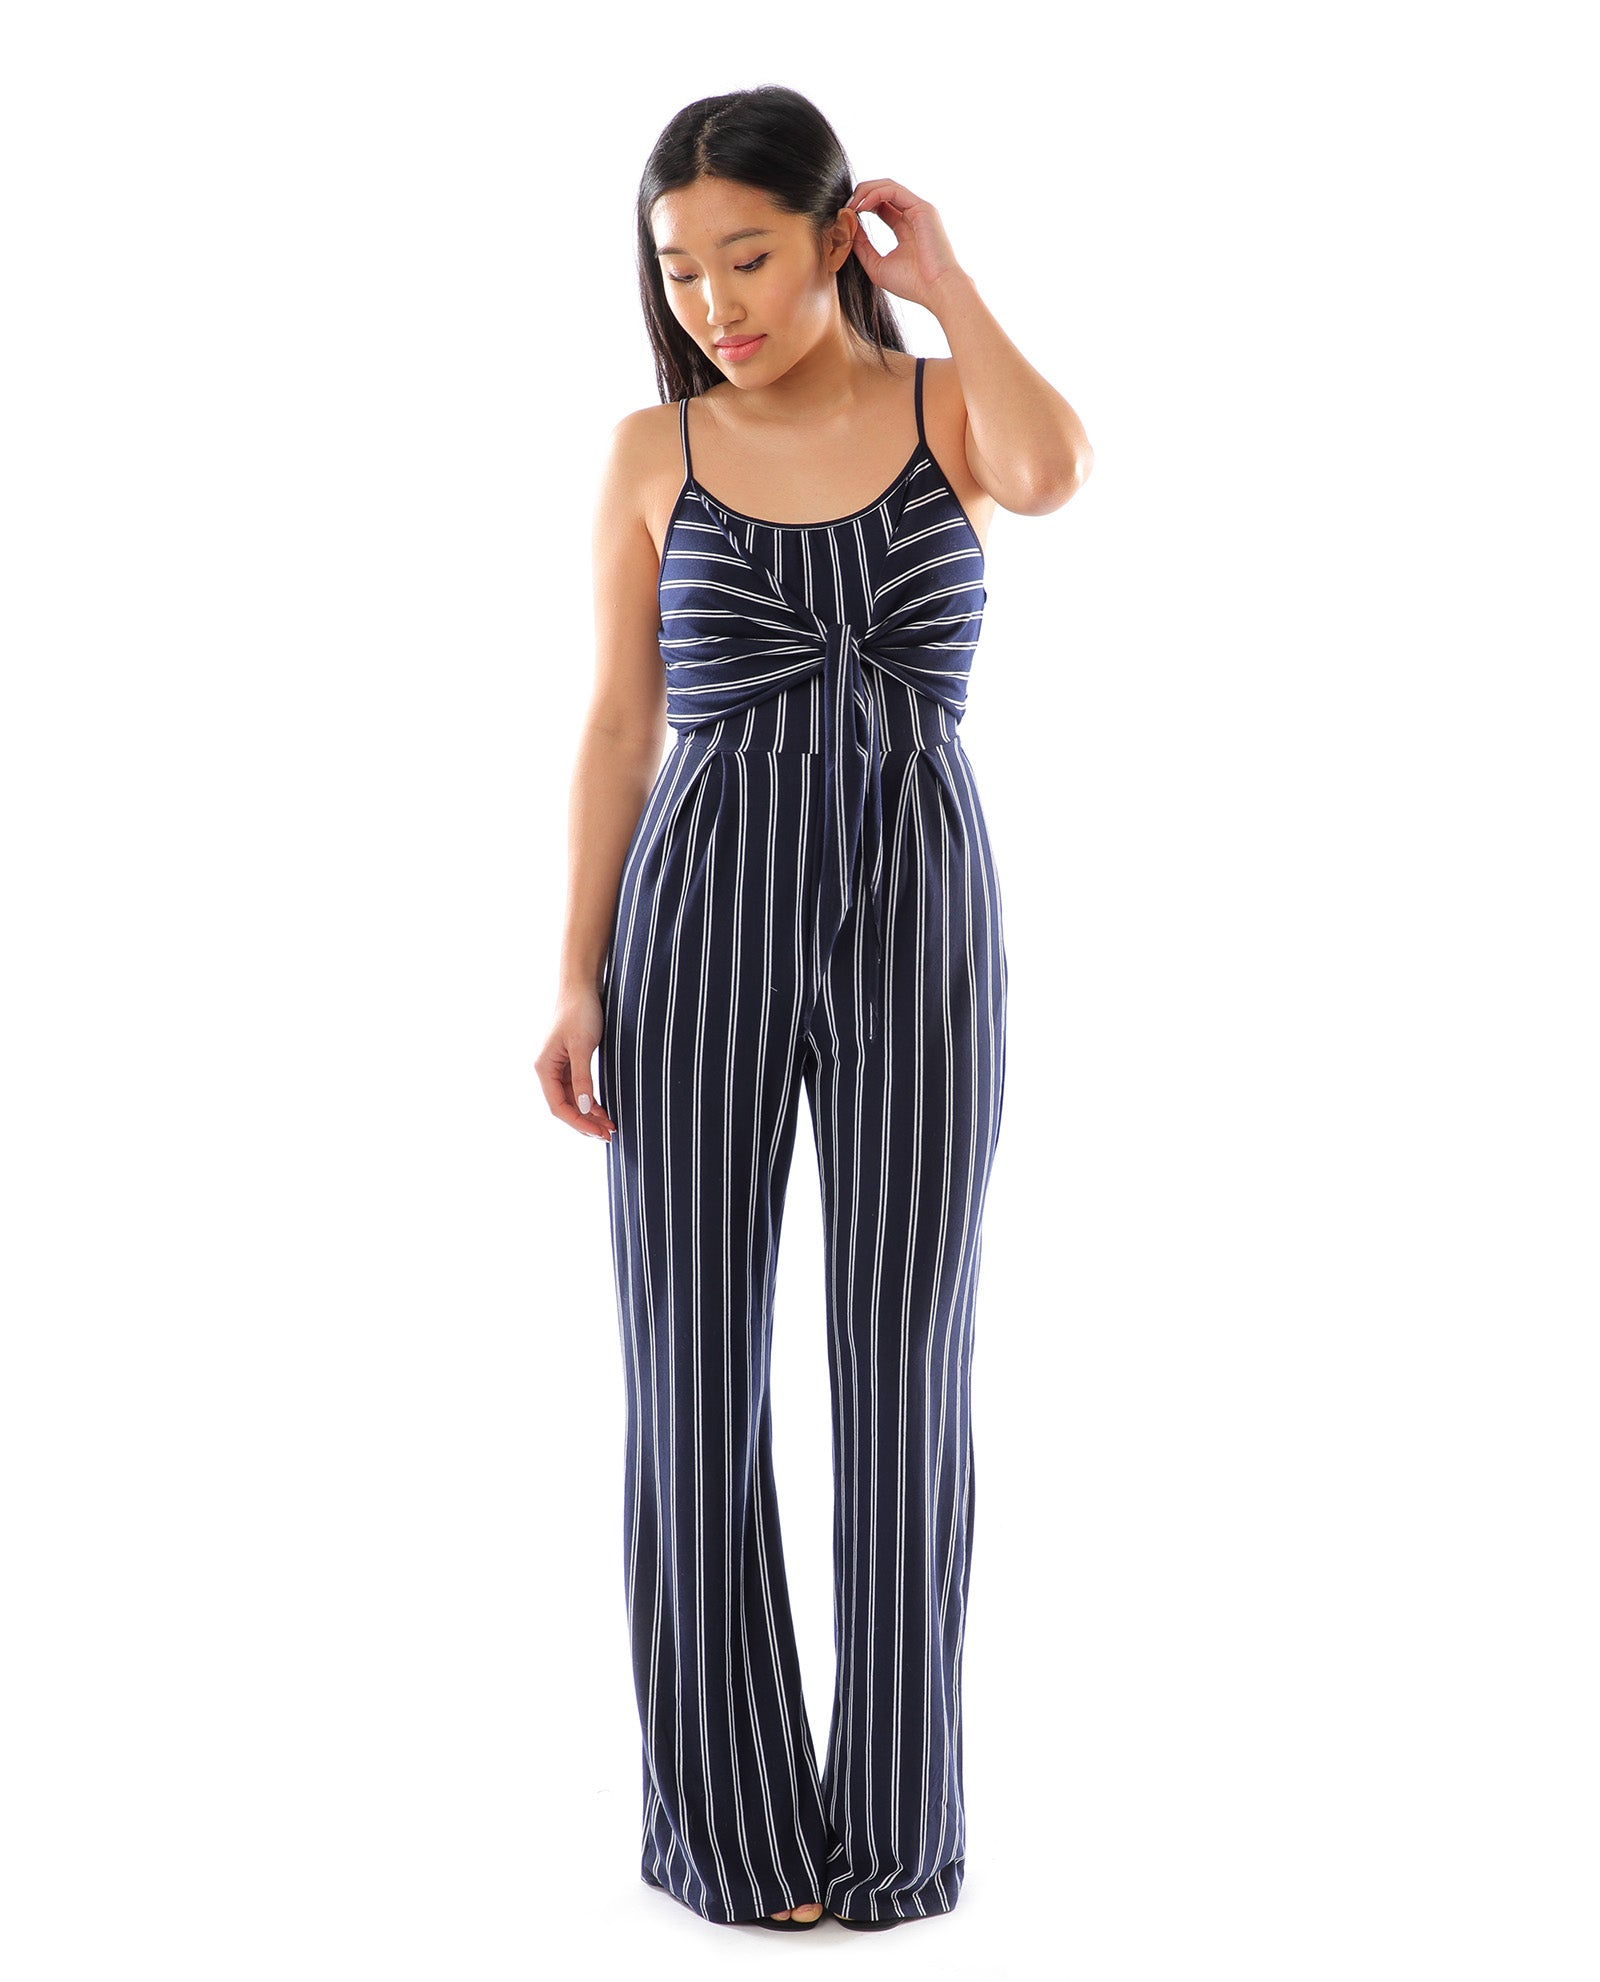 Rent a Jumpsuit | Navy and white striped jumpsuit | Hirestreetuk.com